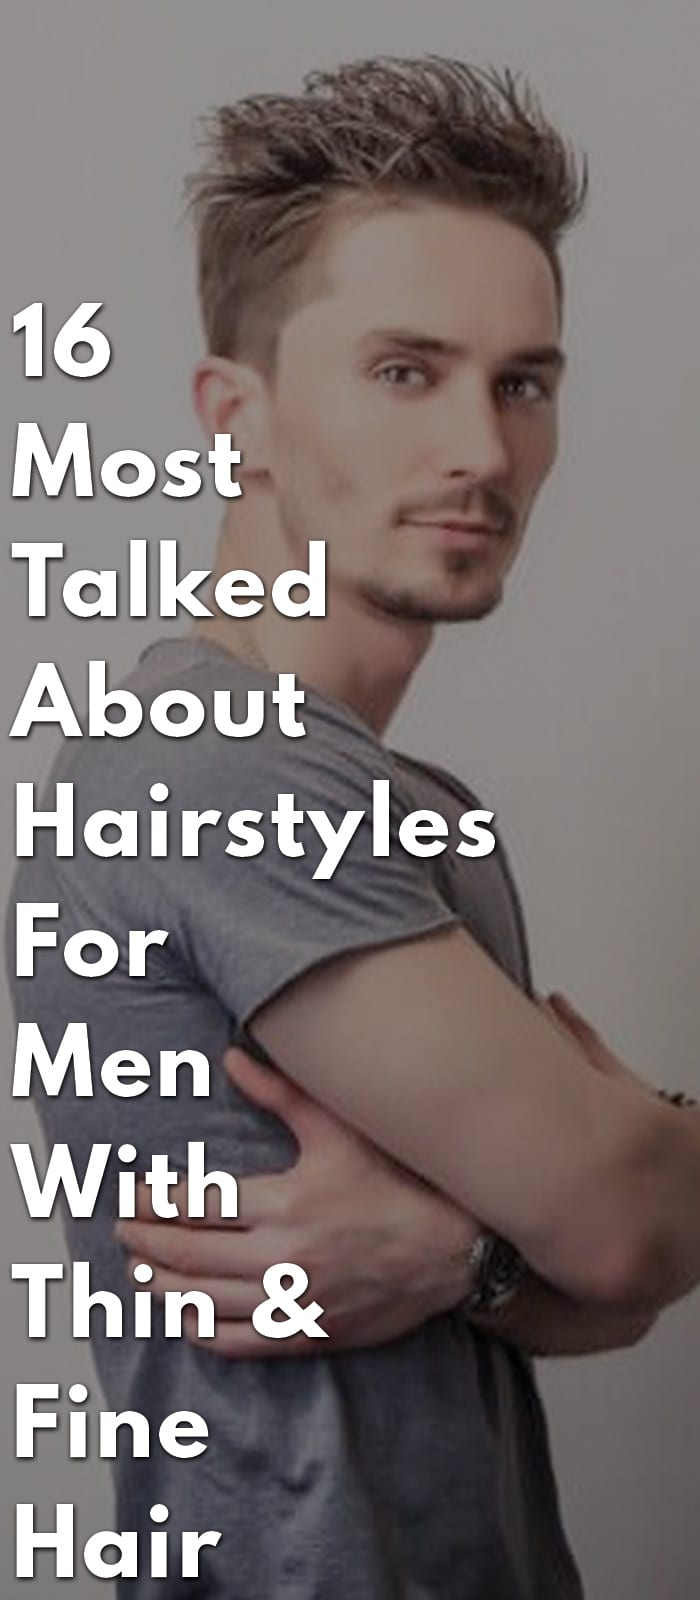 16-Most-Talked-About-Hairstyles-For-Men-With-Thin-&-Fine-Hair